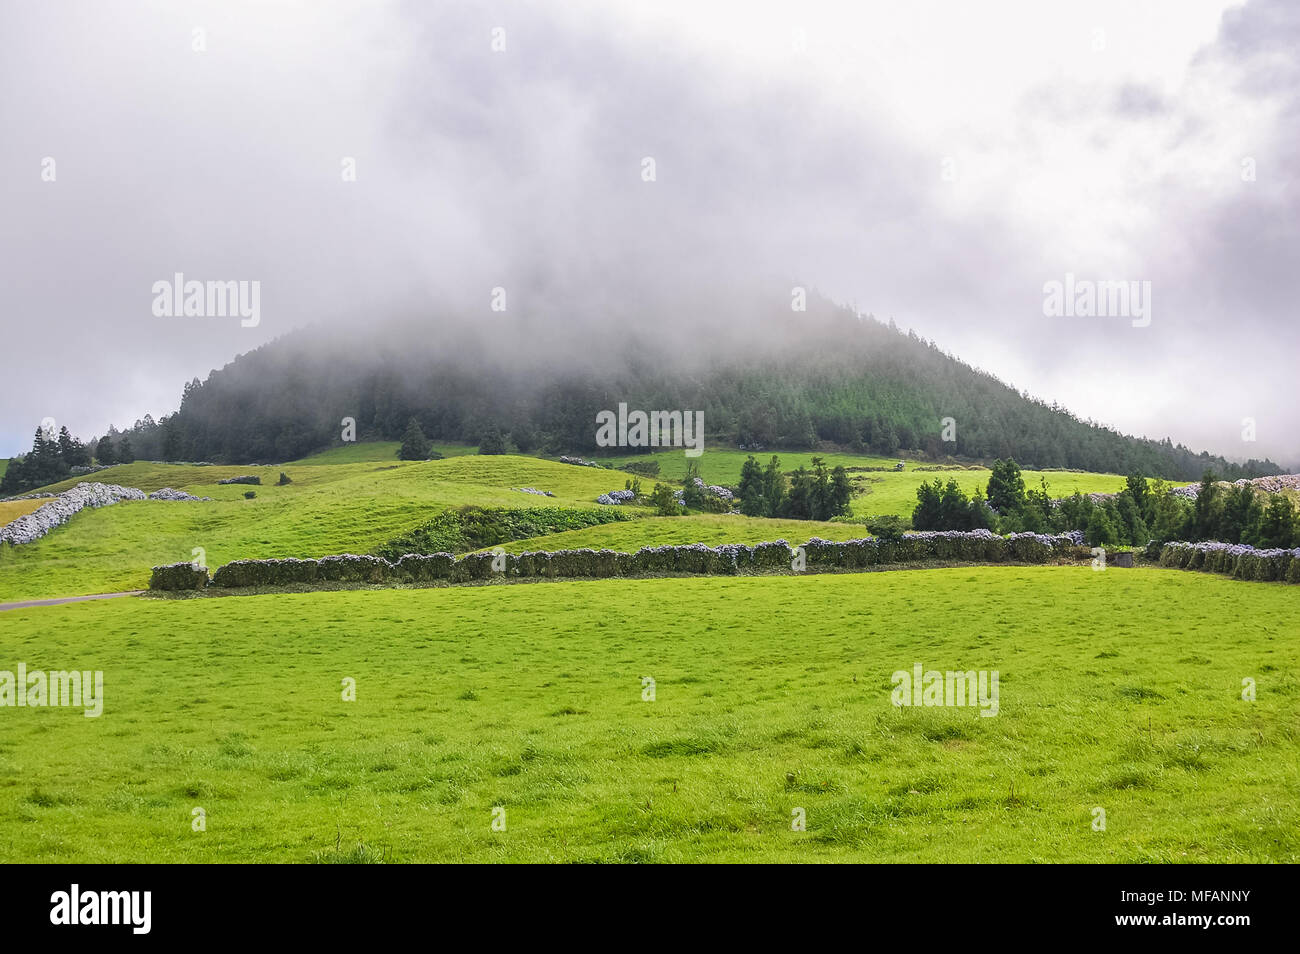 View on landscape at Azores Islands - Portugal Stock Photo